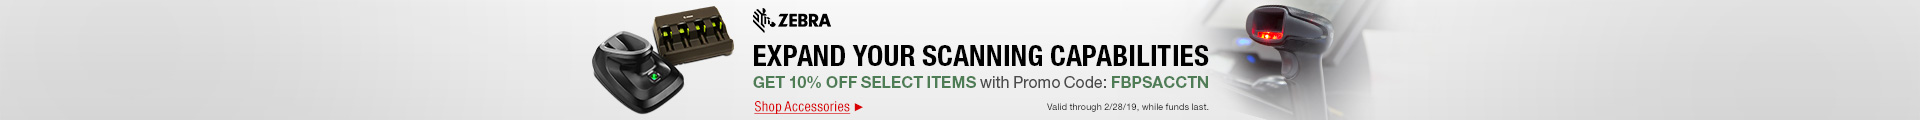 EXPAND YOUR SCANNING CAPABILITIES